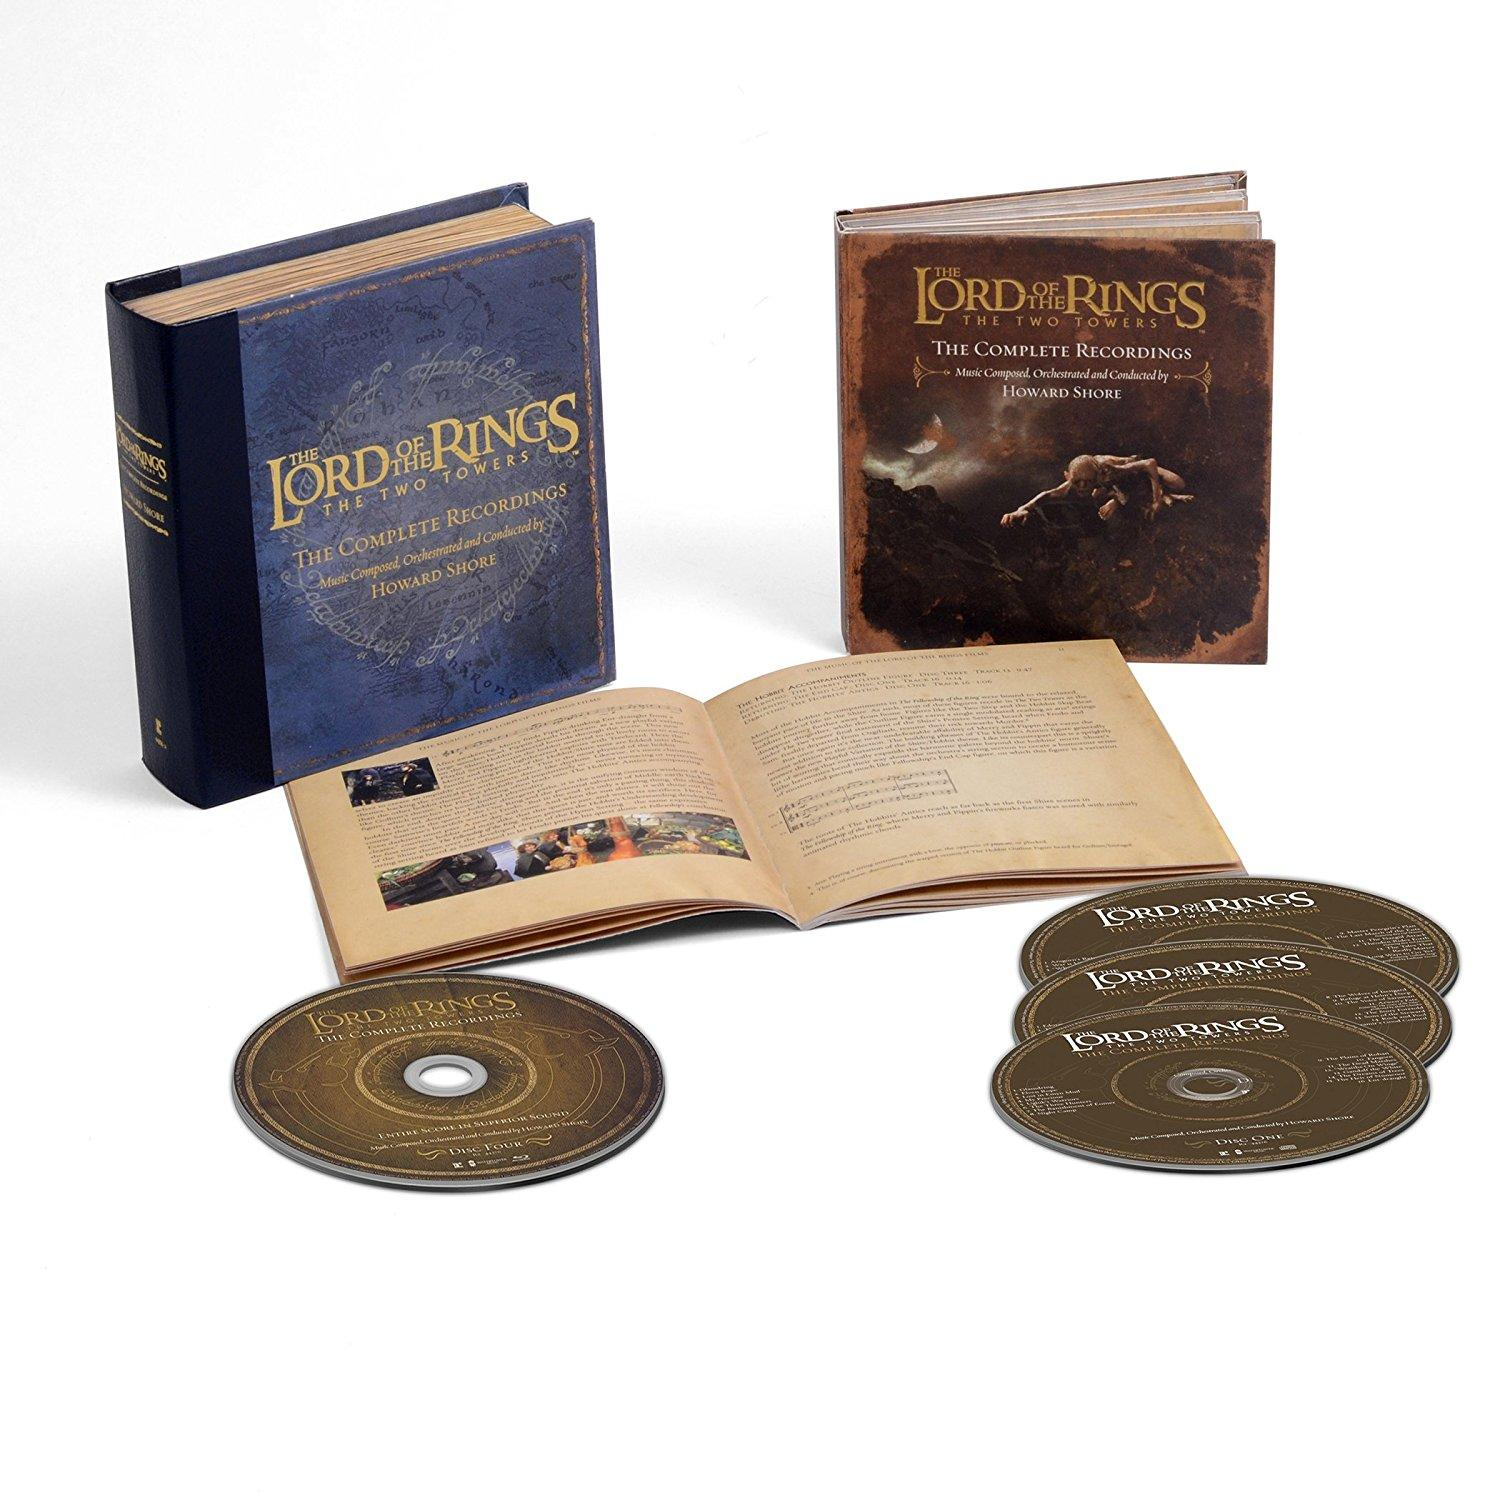 LORD OF THE RINGS: TWO TOWERS (BOXSET)